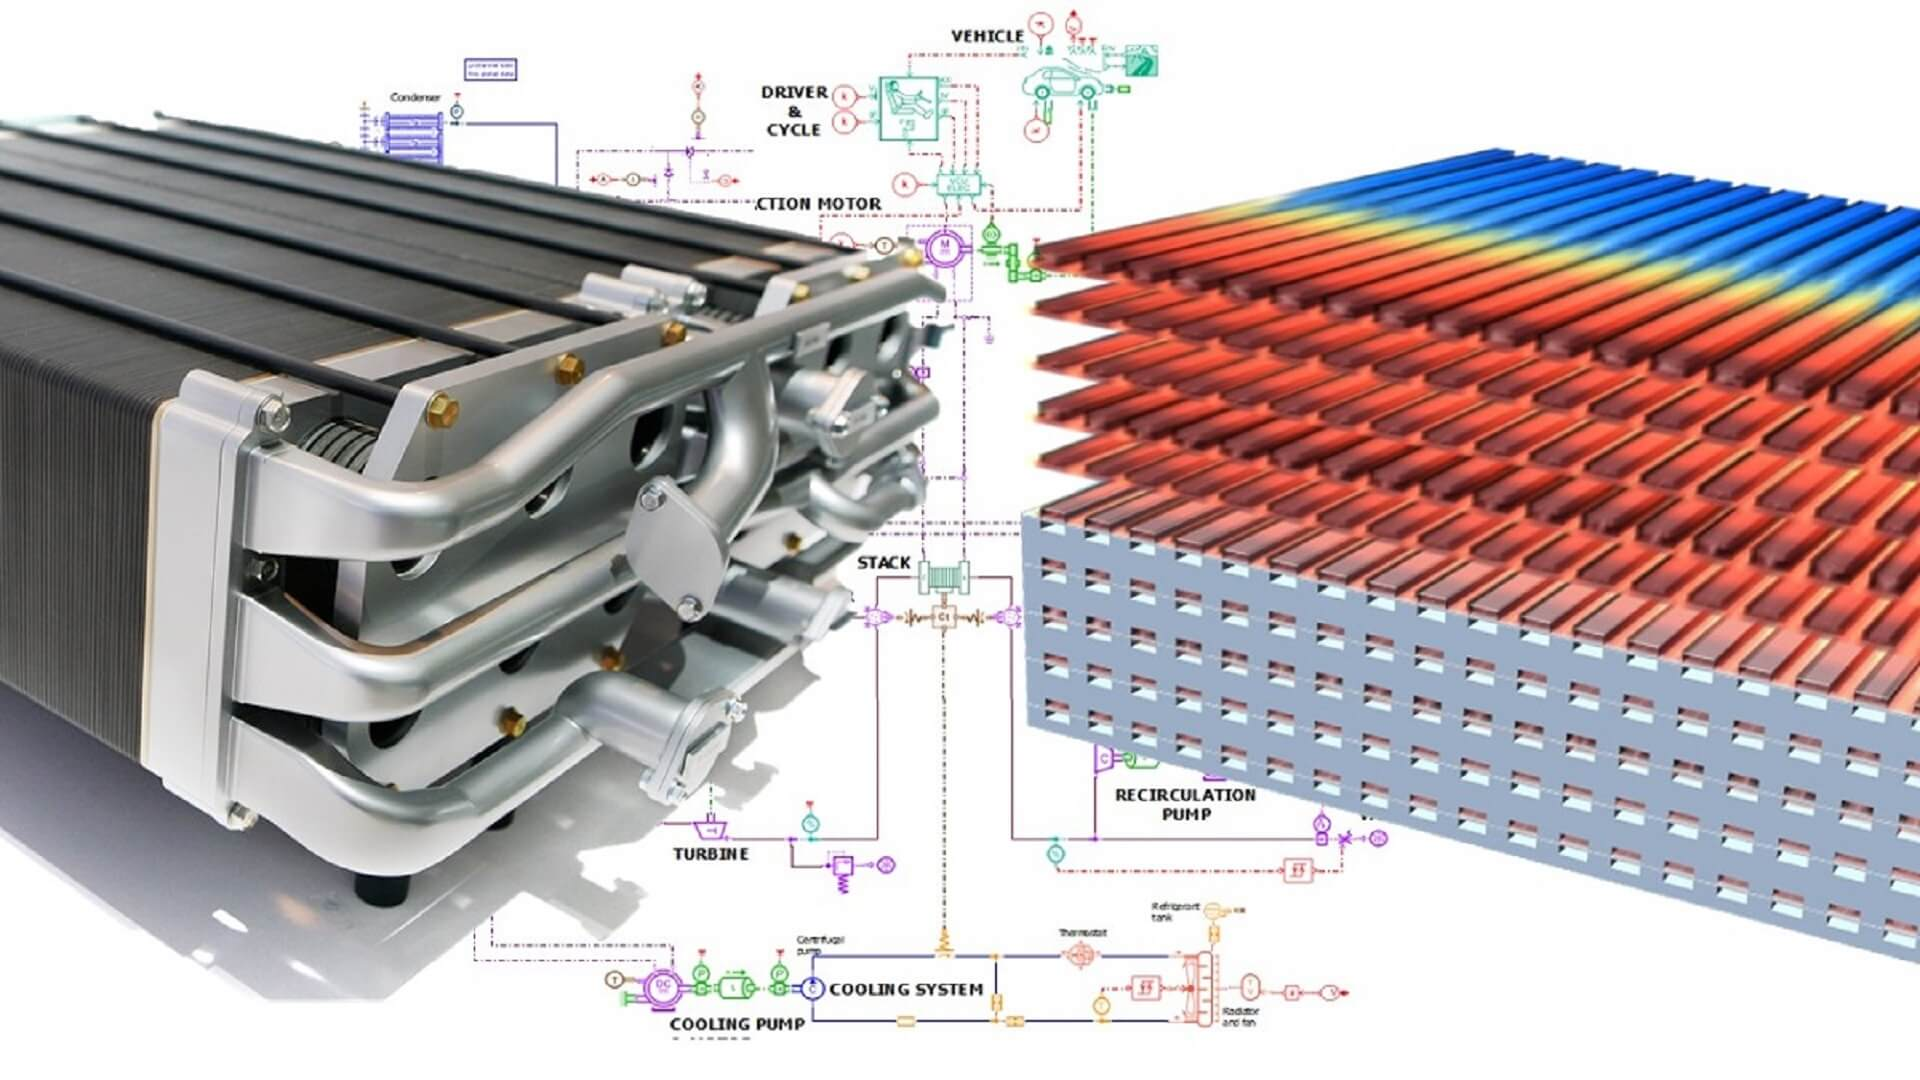 Simcenter solution for fuel cell design